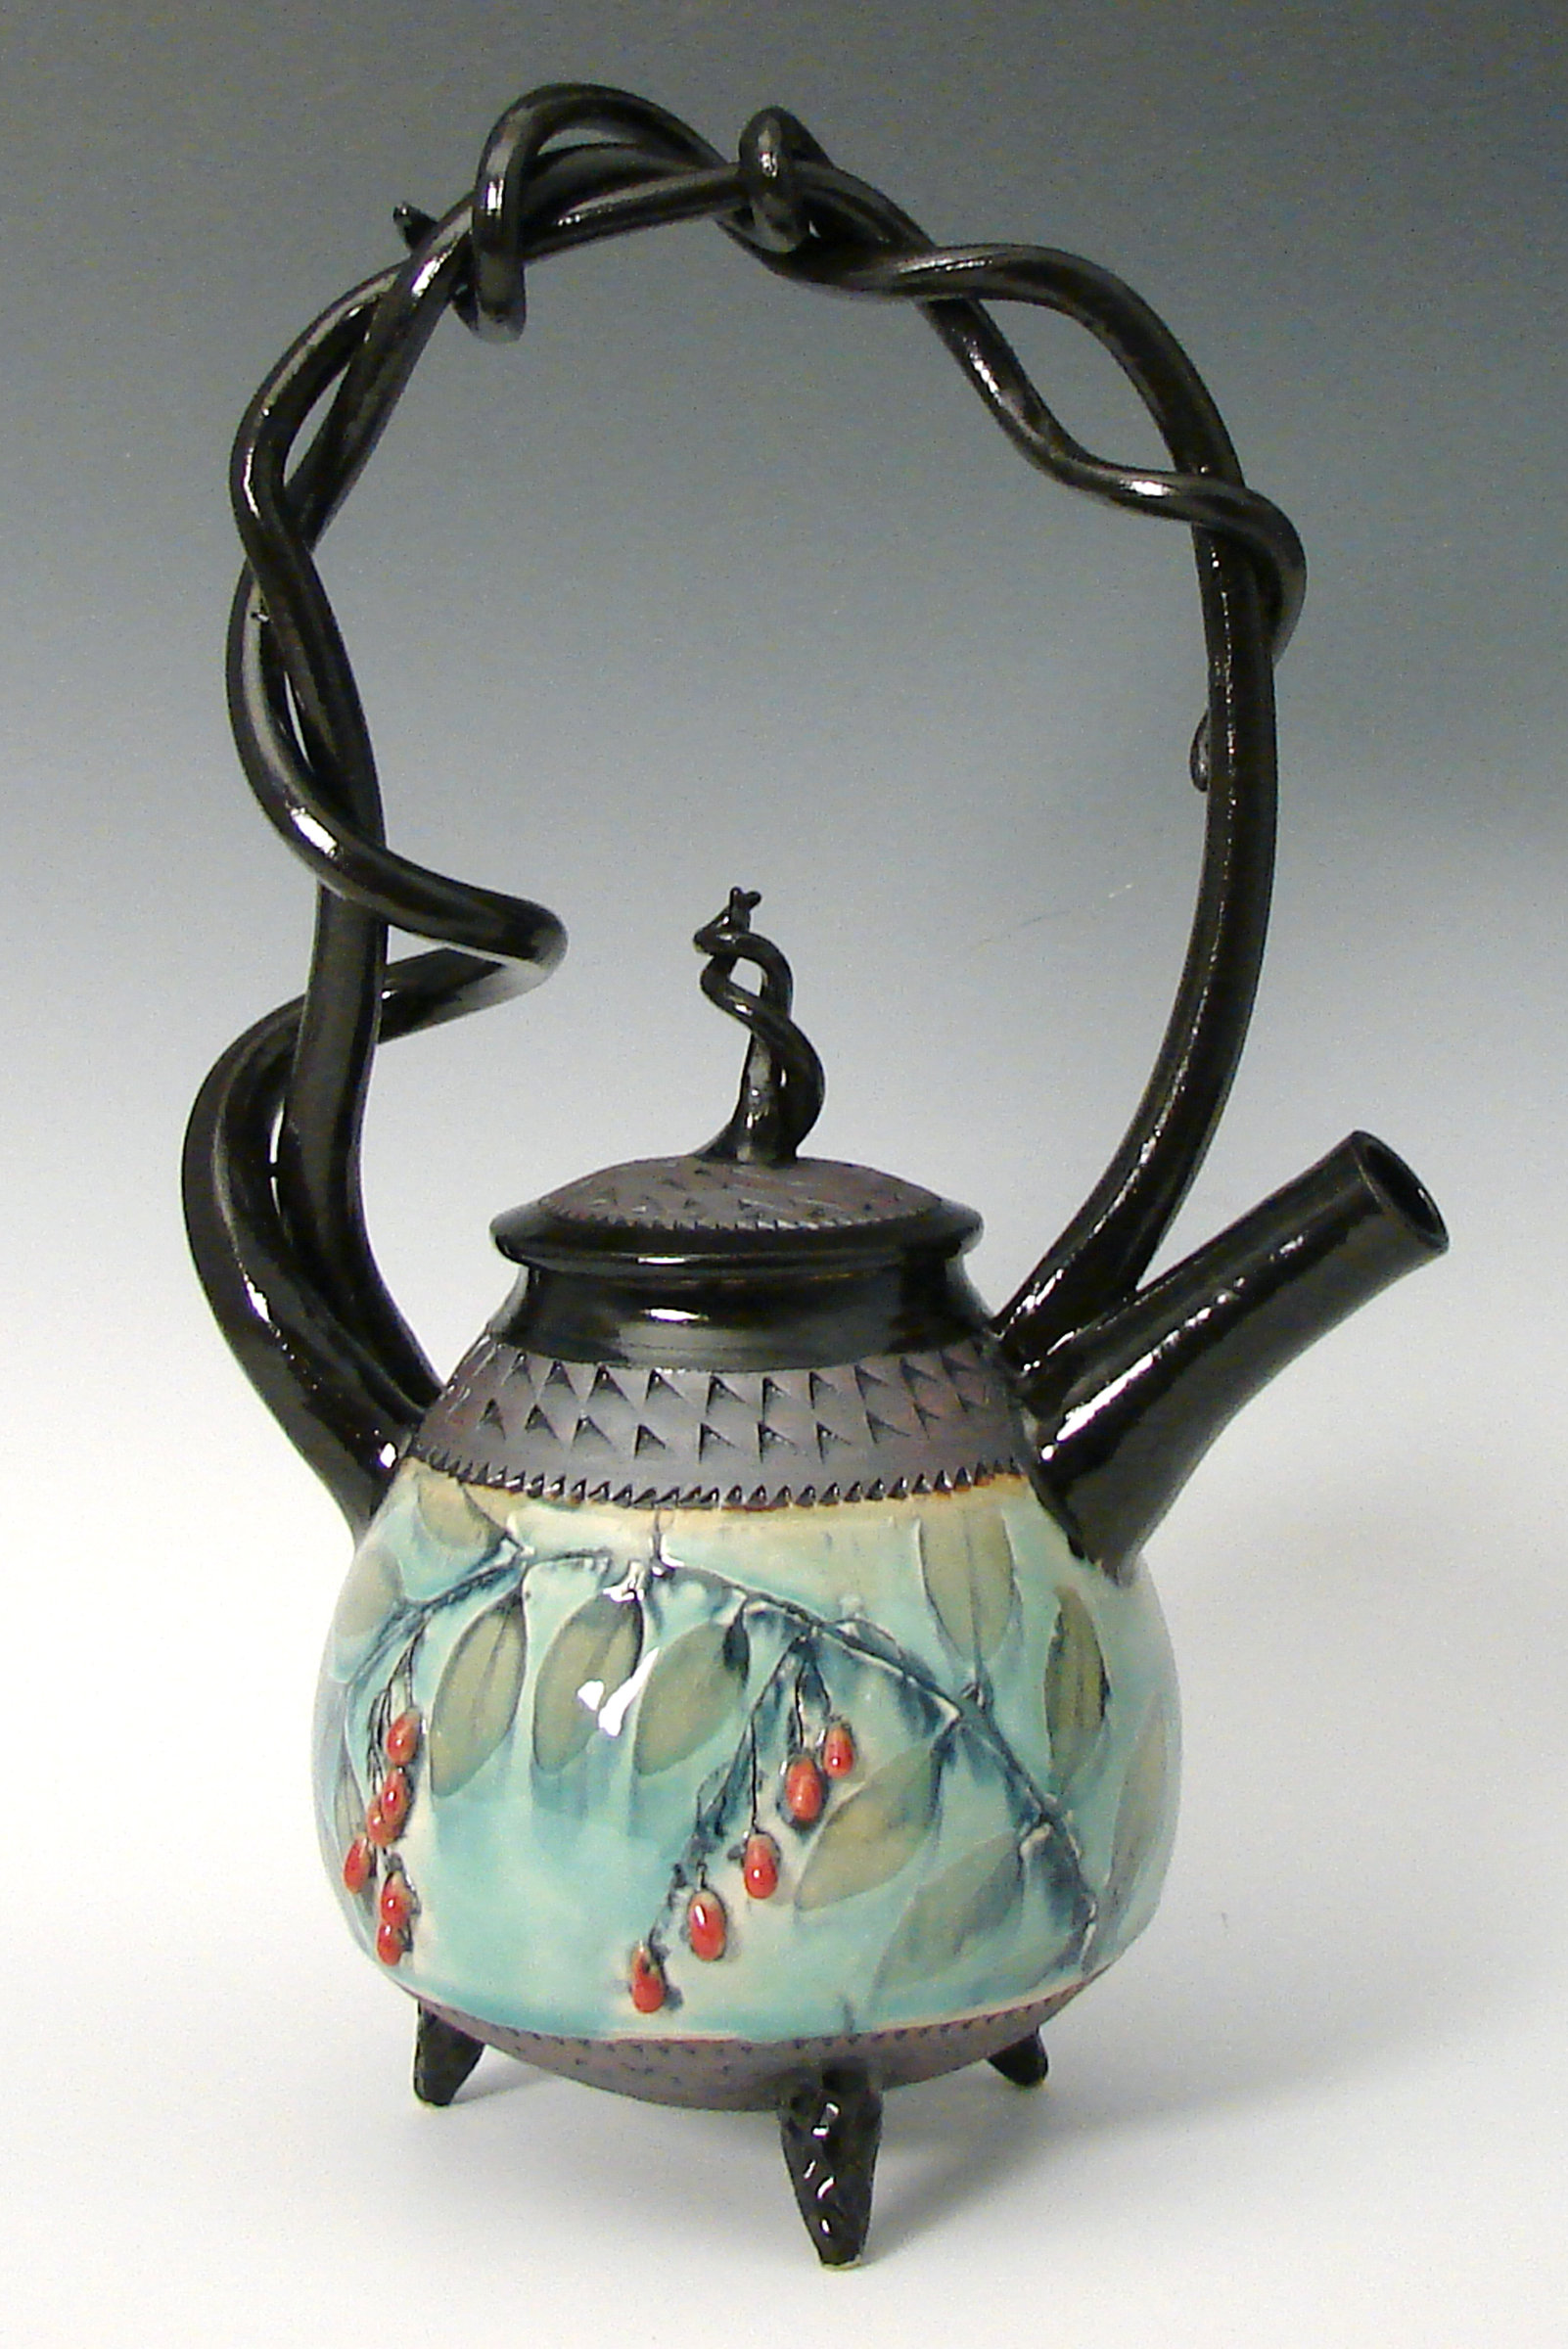 Basket Handled Teapot with Red Berries by Suzanne Crane ...